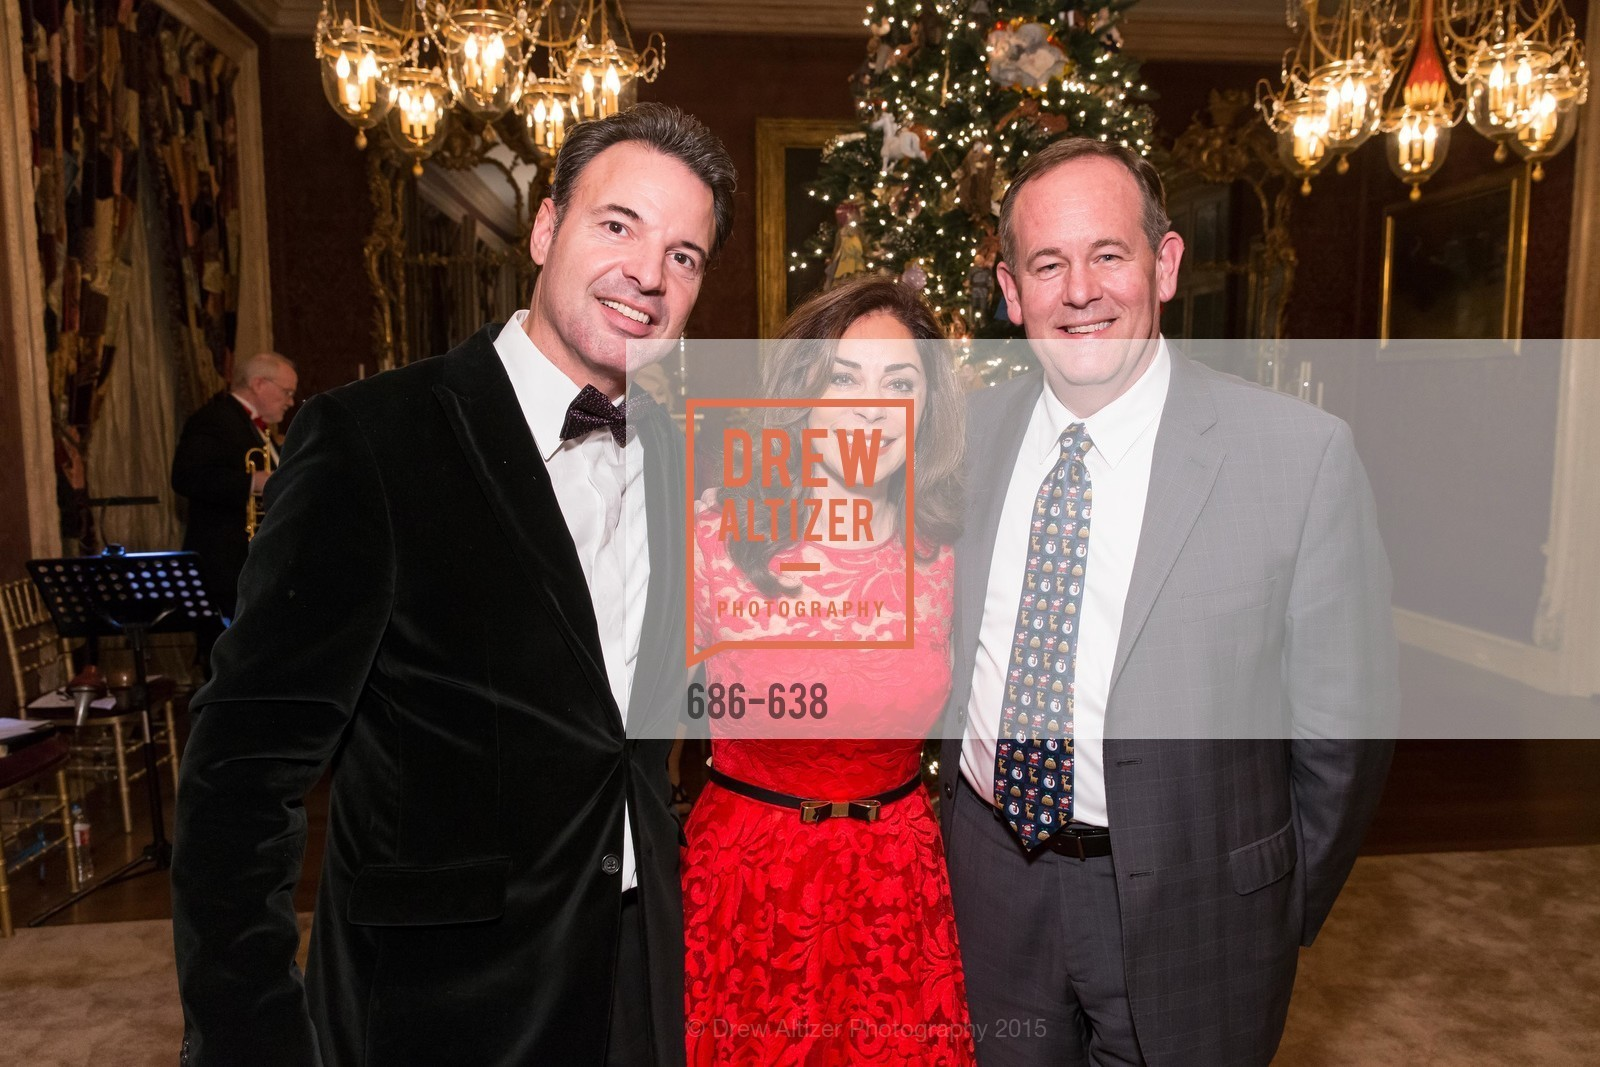 Miguel Valls, Farida Rezbani, Mark Chandler, San Francisco Mayor's Office of Protocol Christmas Party, Private Residence, December 9th, 2015,Drew Altizer, Drew Altizer Photography, full-service event agency, private events, San Francisco photographer, photographer California